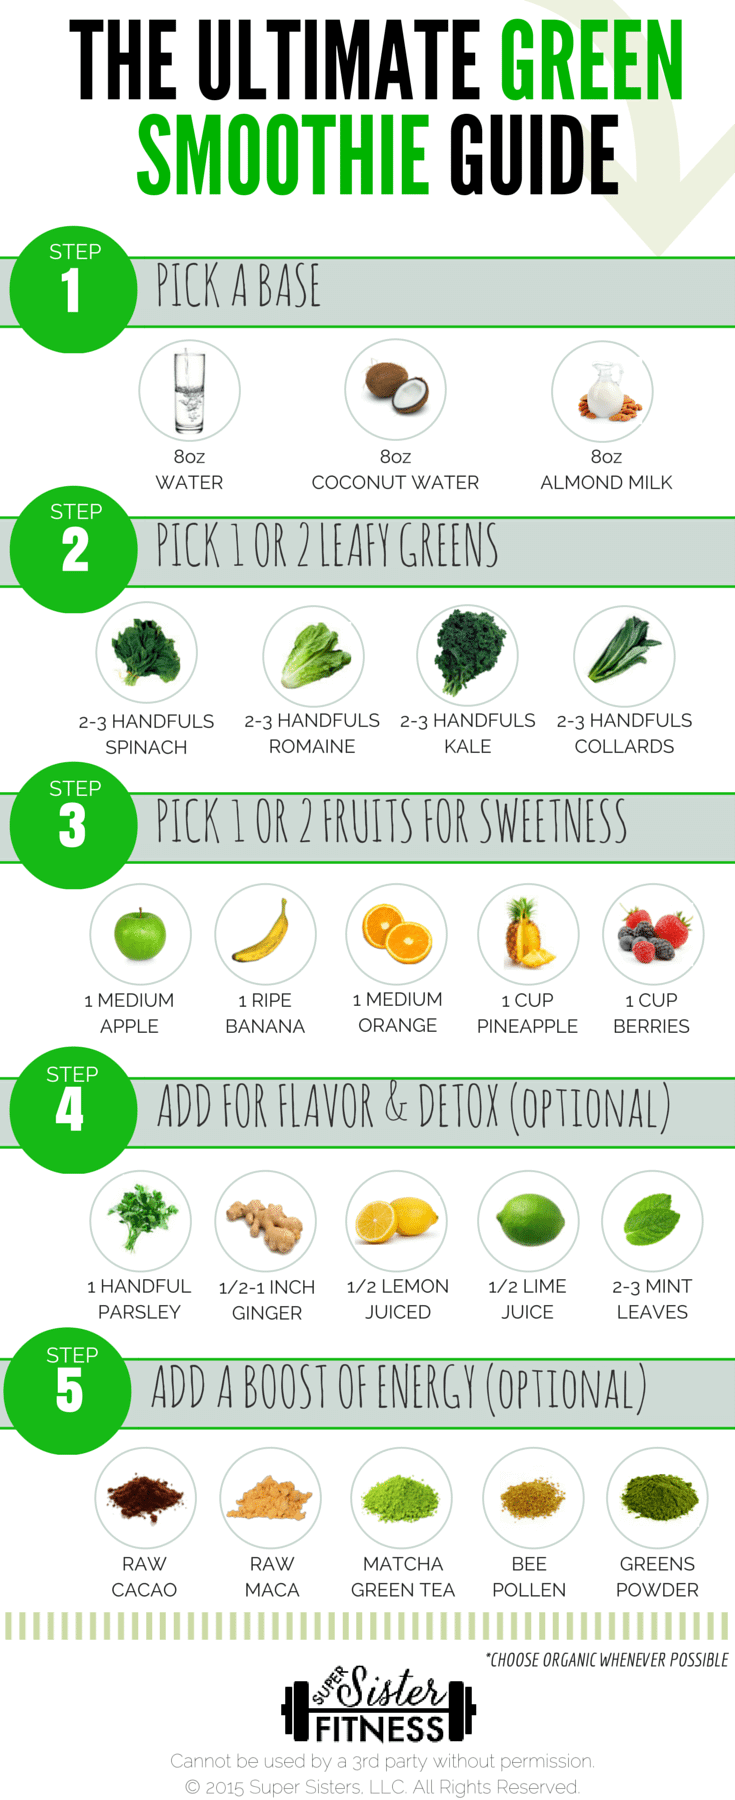 35 BEST Green Smoothie Recipes For Weight Loss | The